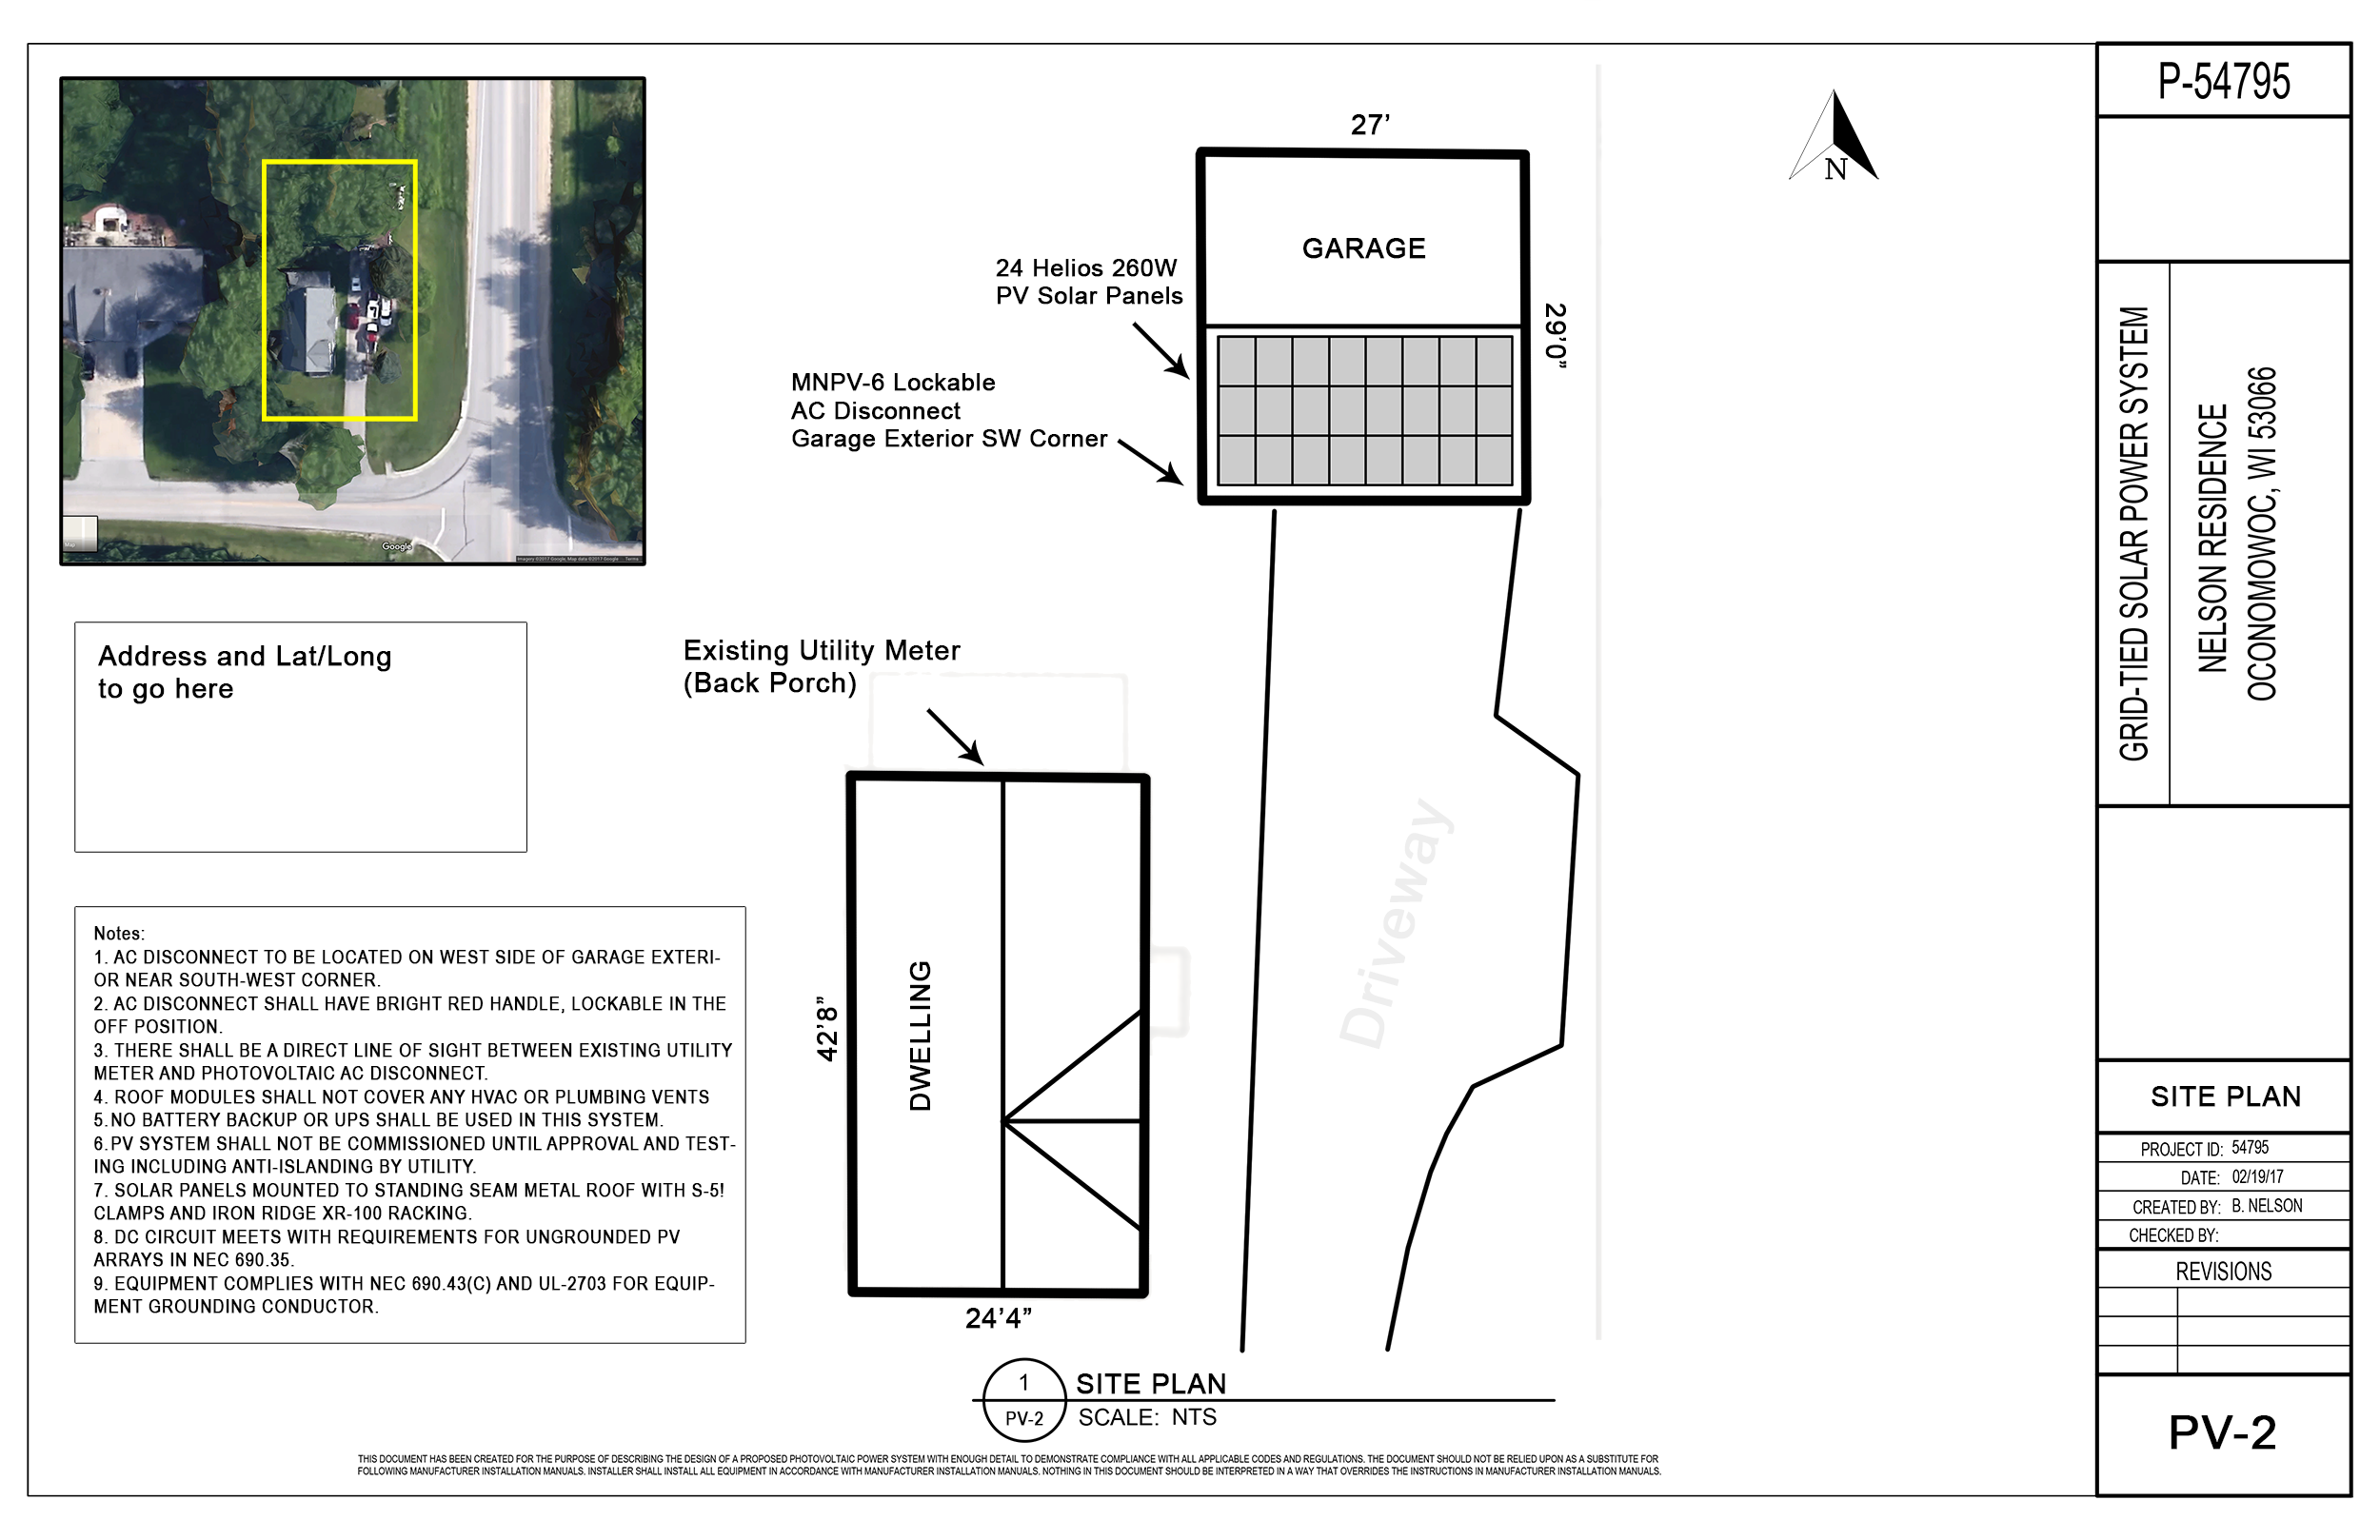 Picture of Proposal and Permitting